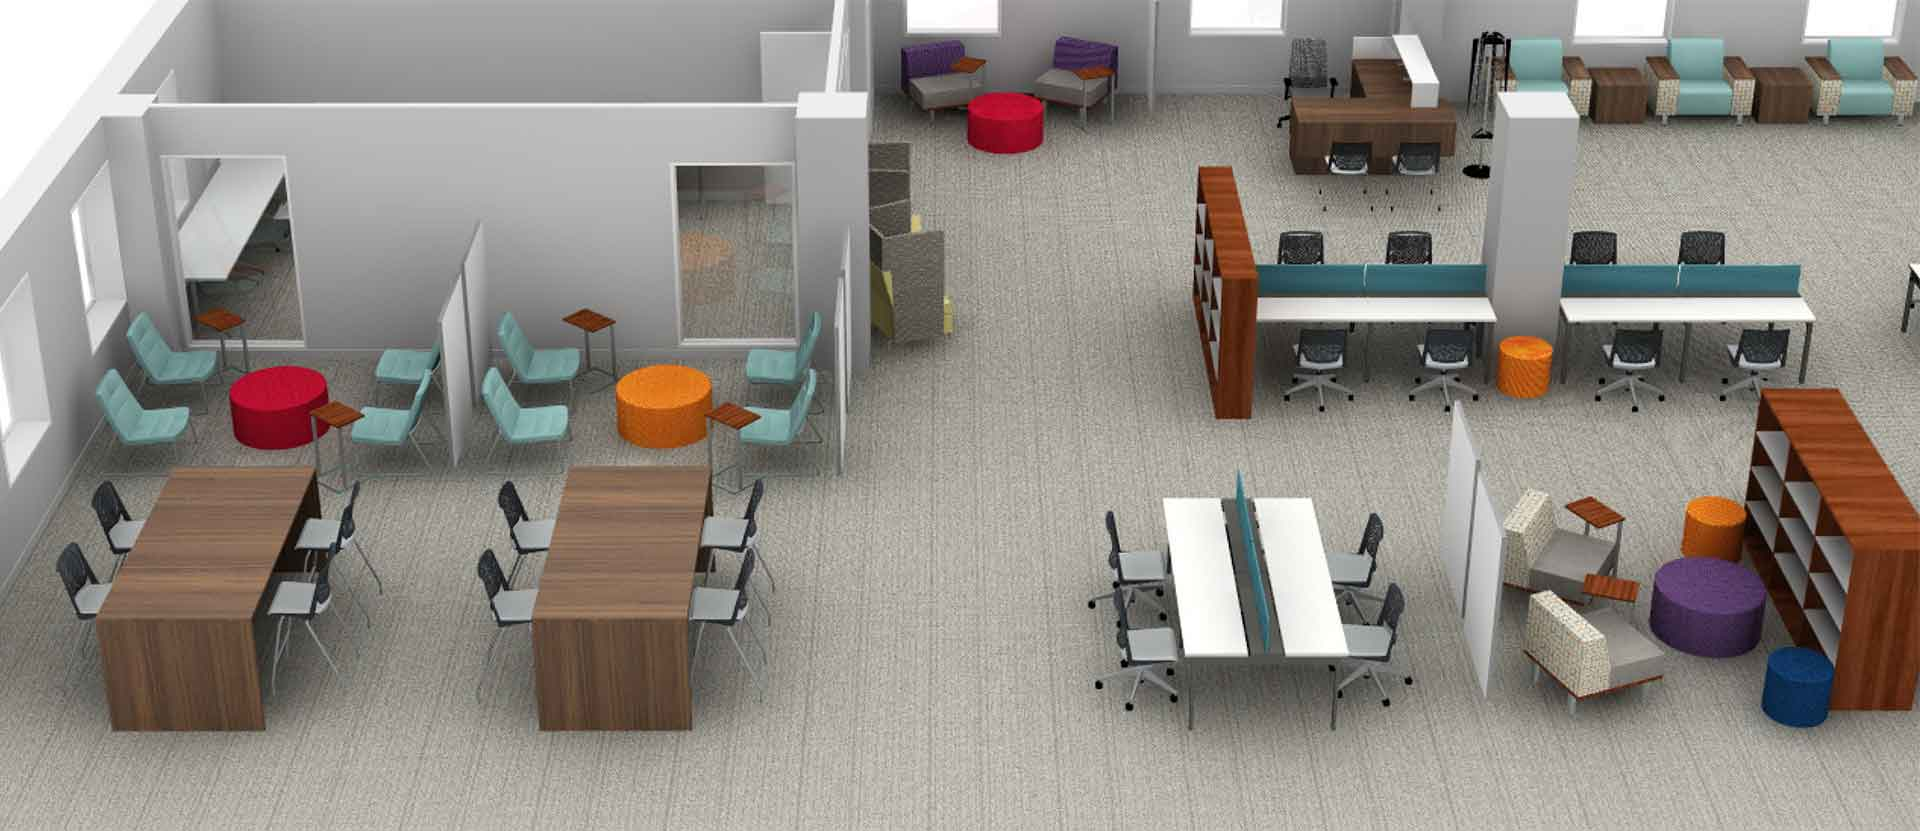 Illustration on new library plans